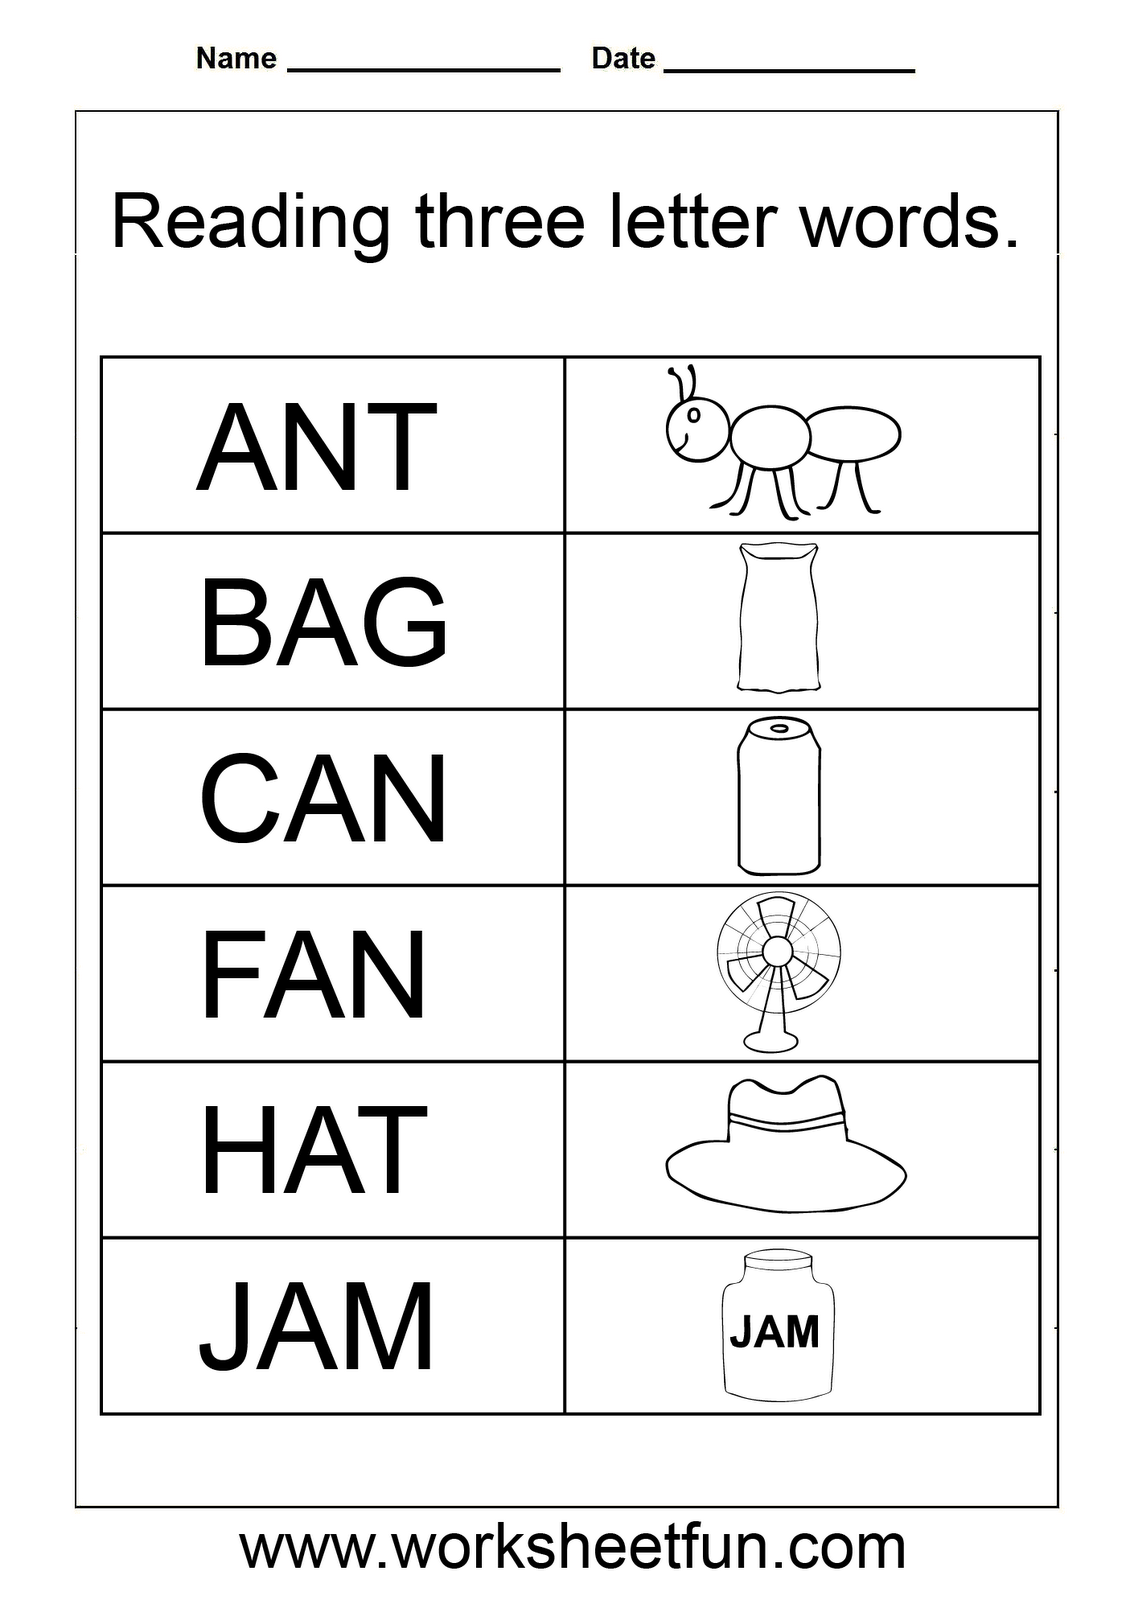 image result for nursery spelling worksheets ansh 3 letter words three letter words. Black Bedroom Furniture Sets. Home Design Ideas